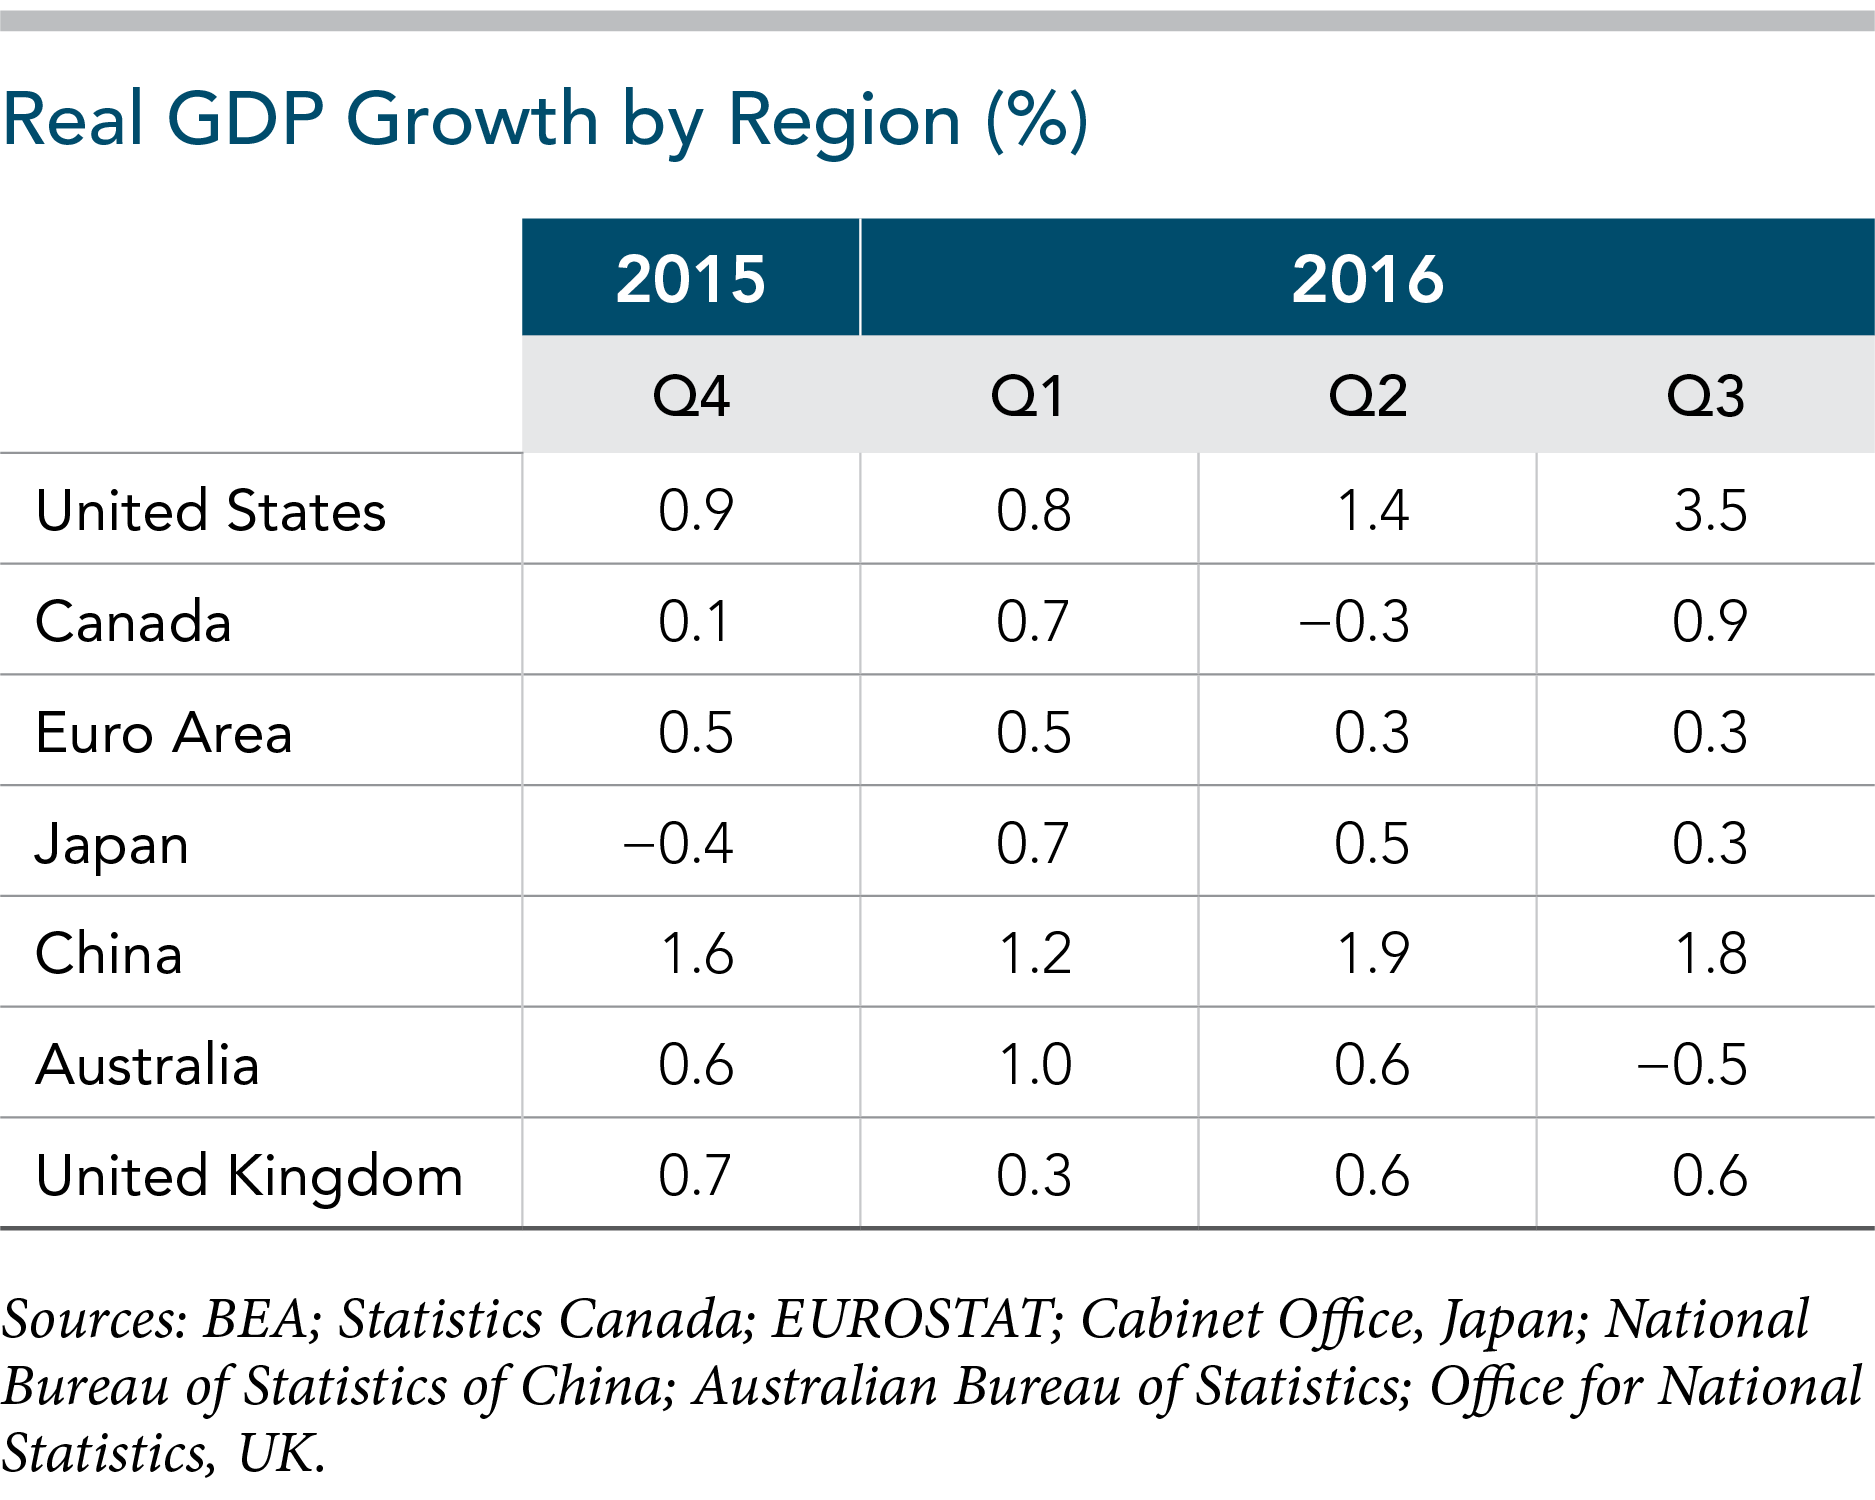 GDP growth by region 2016